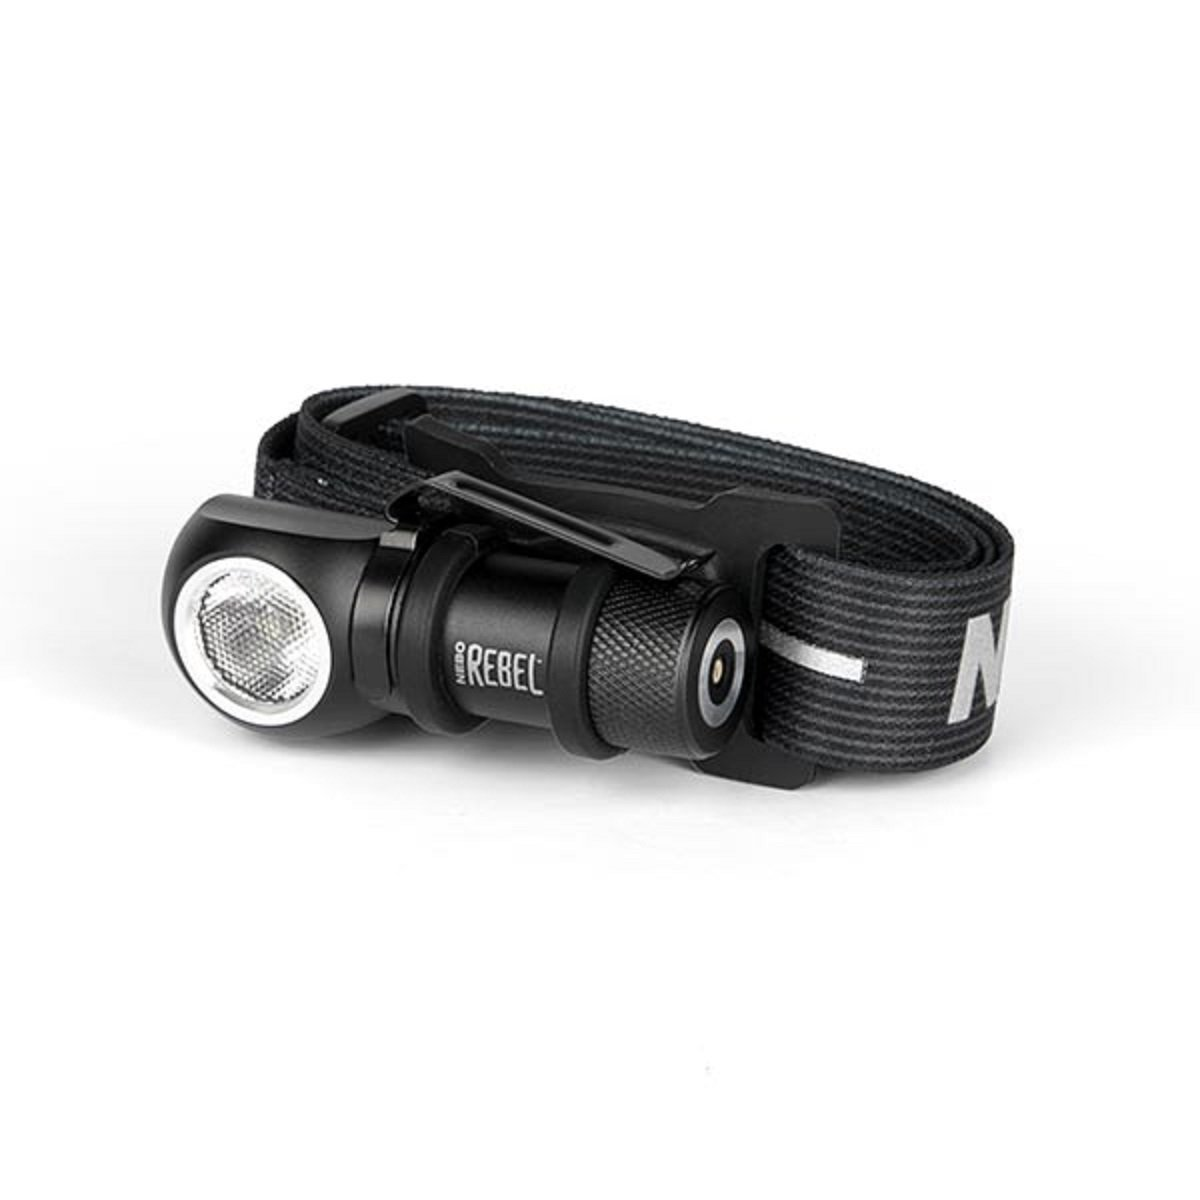 NEBO REBEL Tactical Head Lamp: Small enough to fit in the palm of your hand, this powerful Rechargeable Head Light rebels against its size with its impressive 600 lumen output and 4 Working Modes  by NEBO (Image #1)